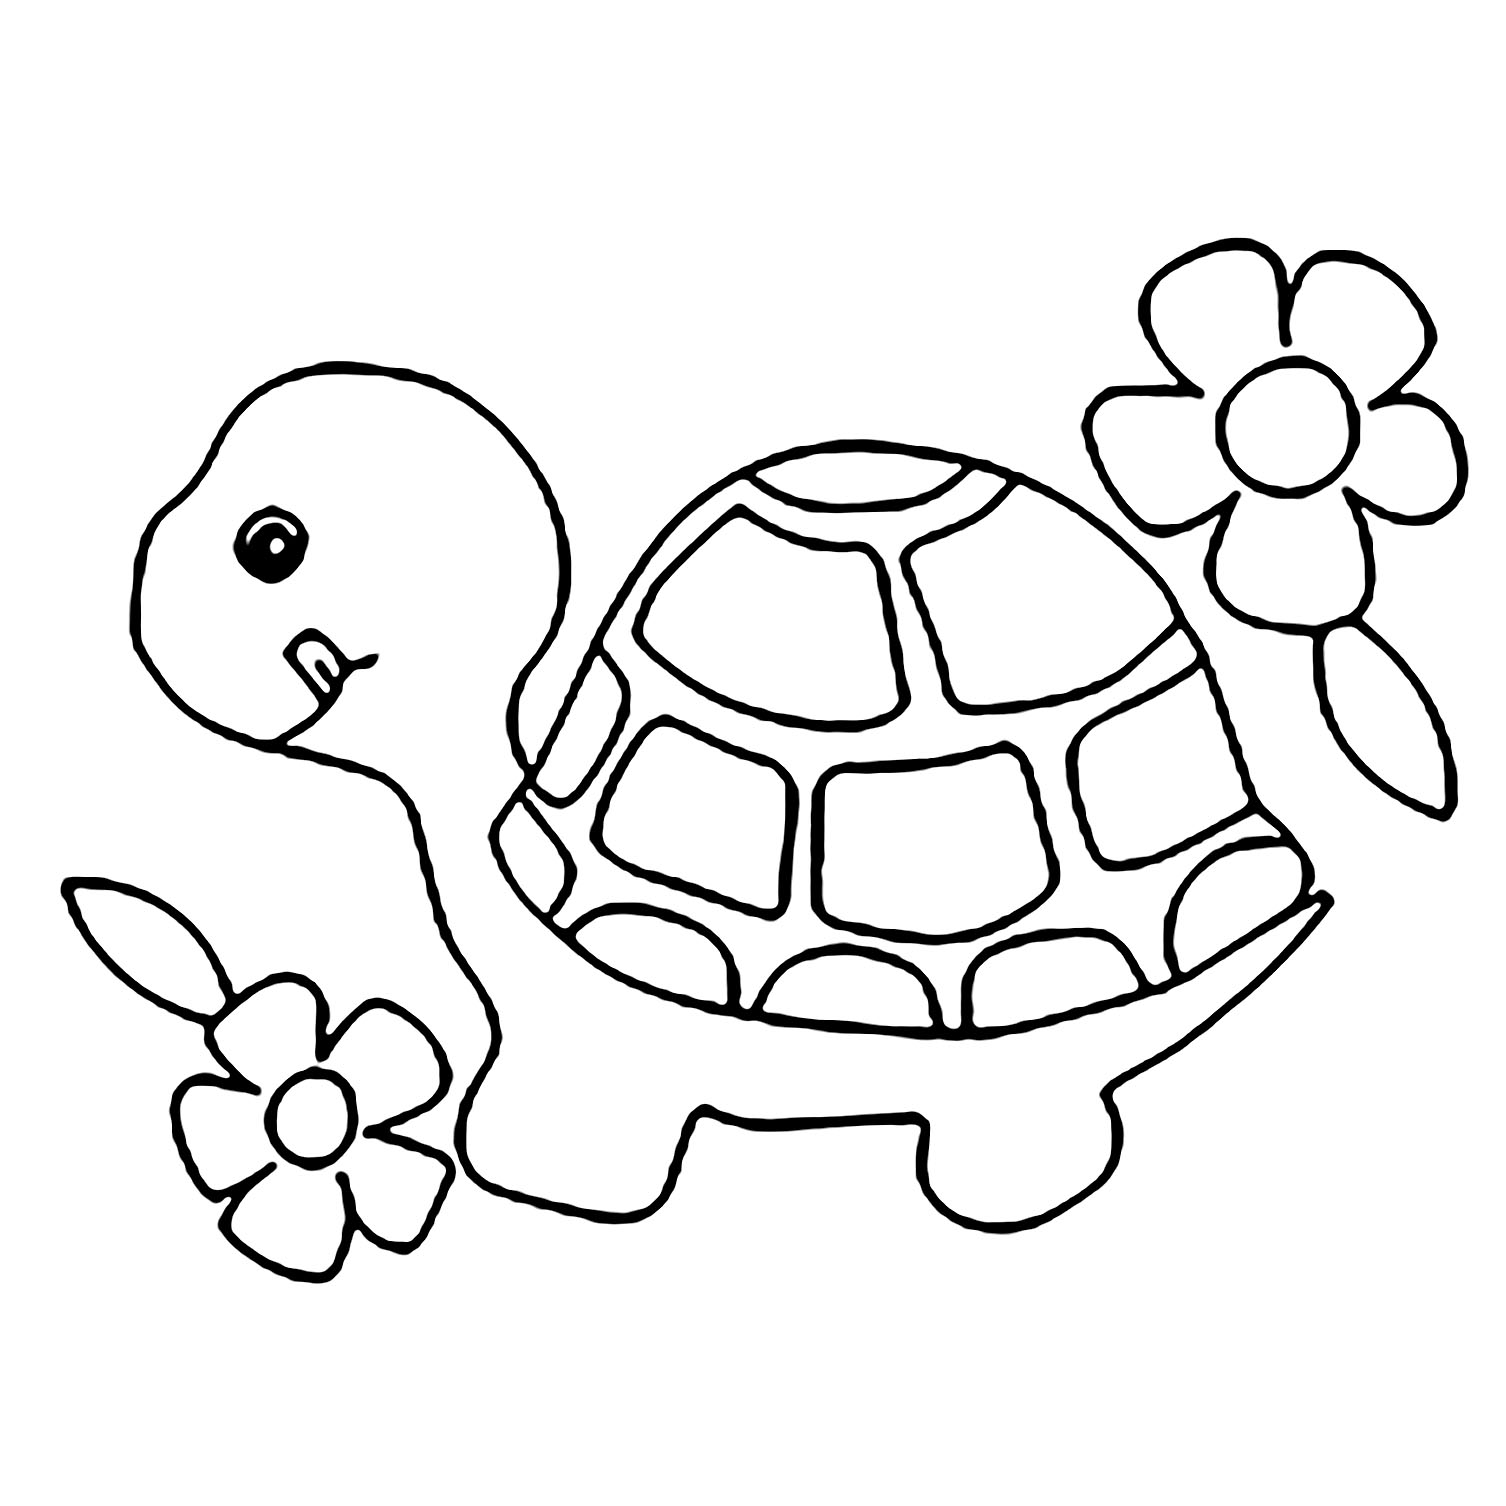 tortoise colouring pictures turtles to print turtles kids coloring pages colouring tortoise pictures